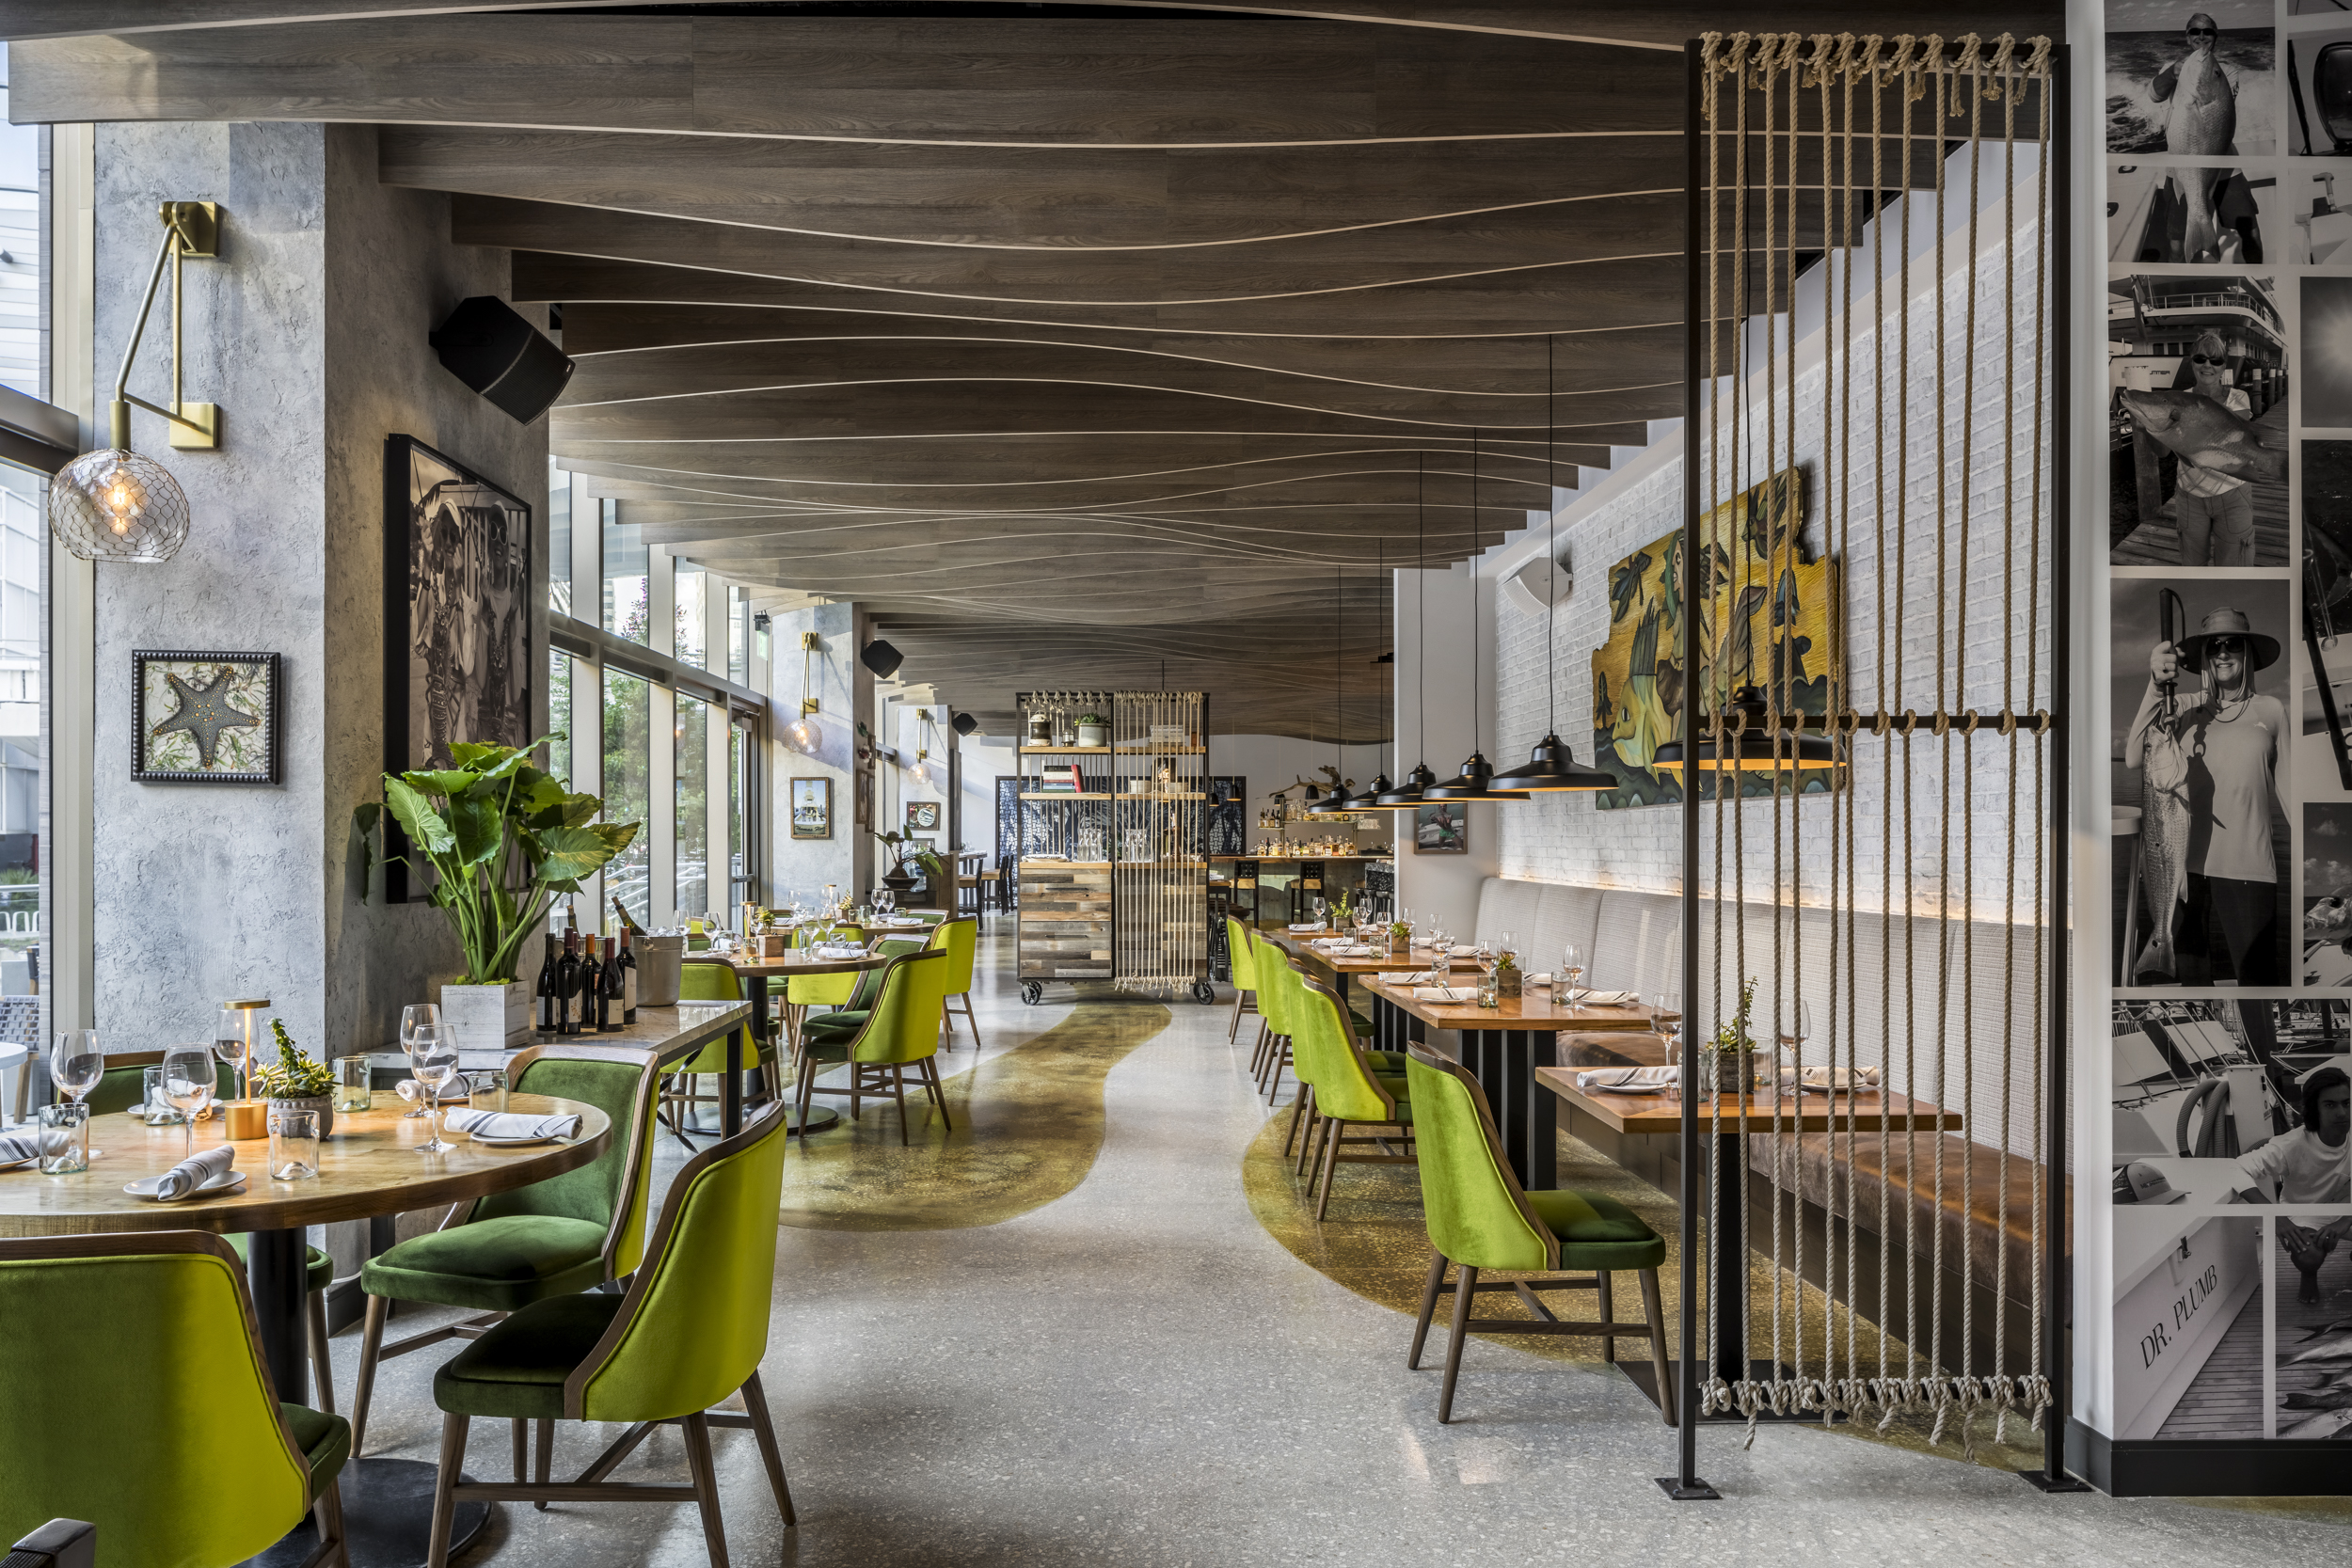 River Oyster Bar with green upholstered chairs, artwork and rope screen